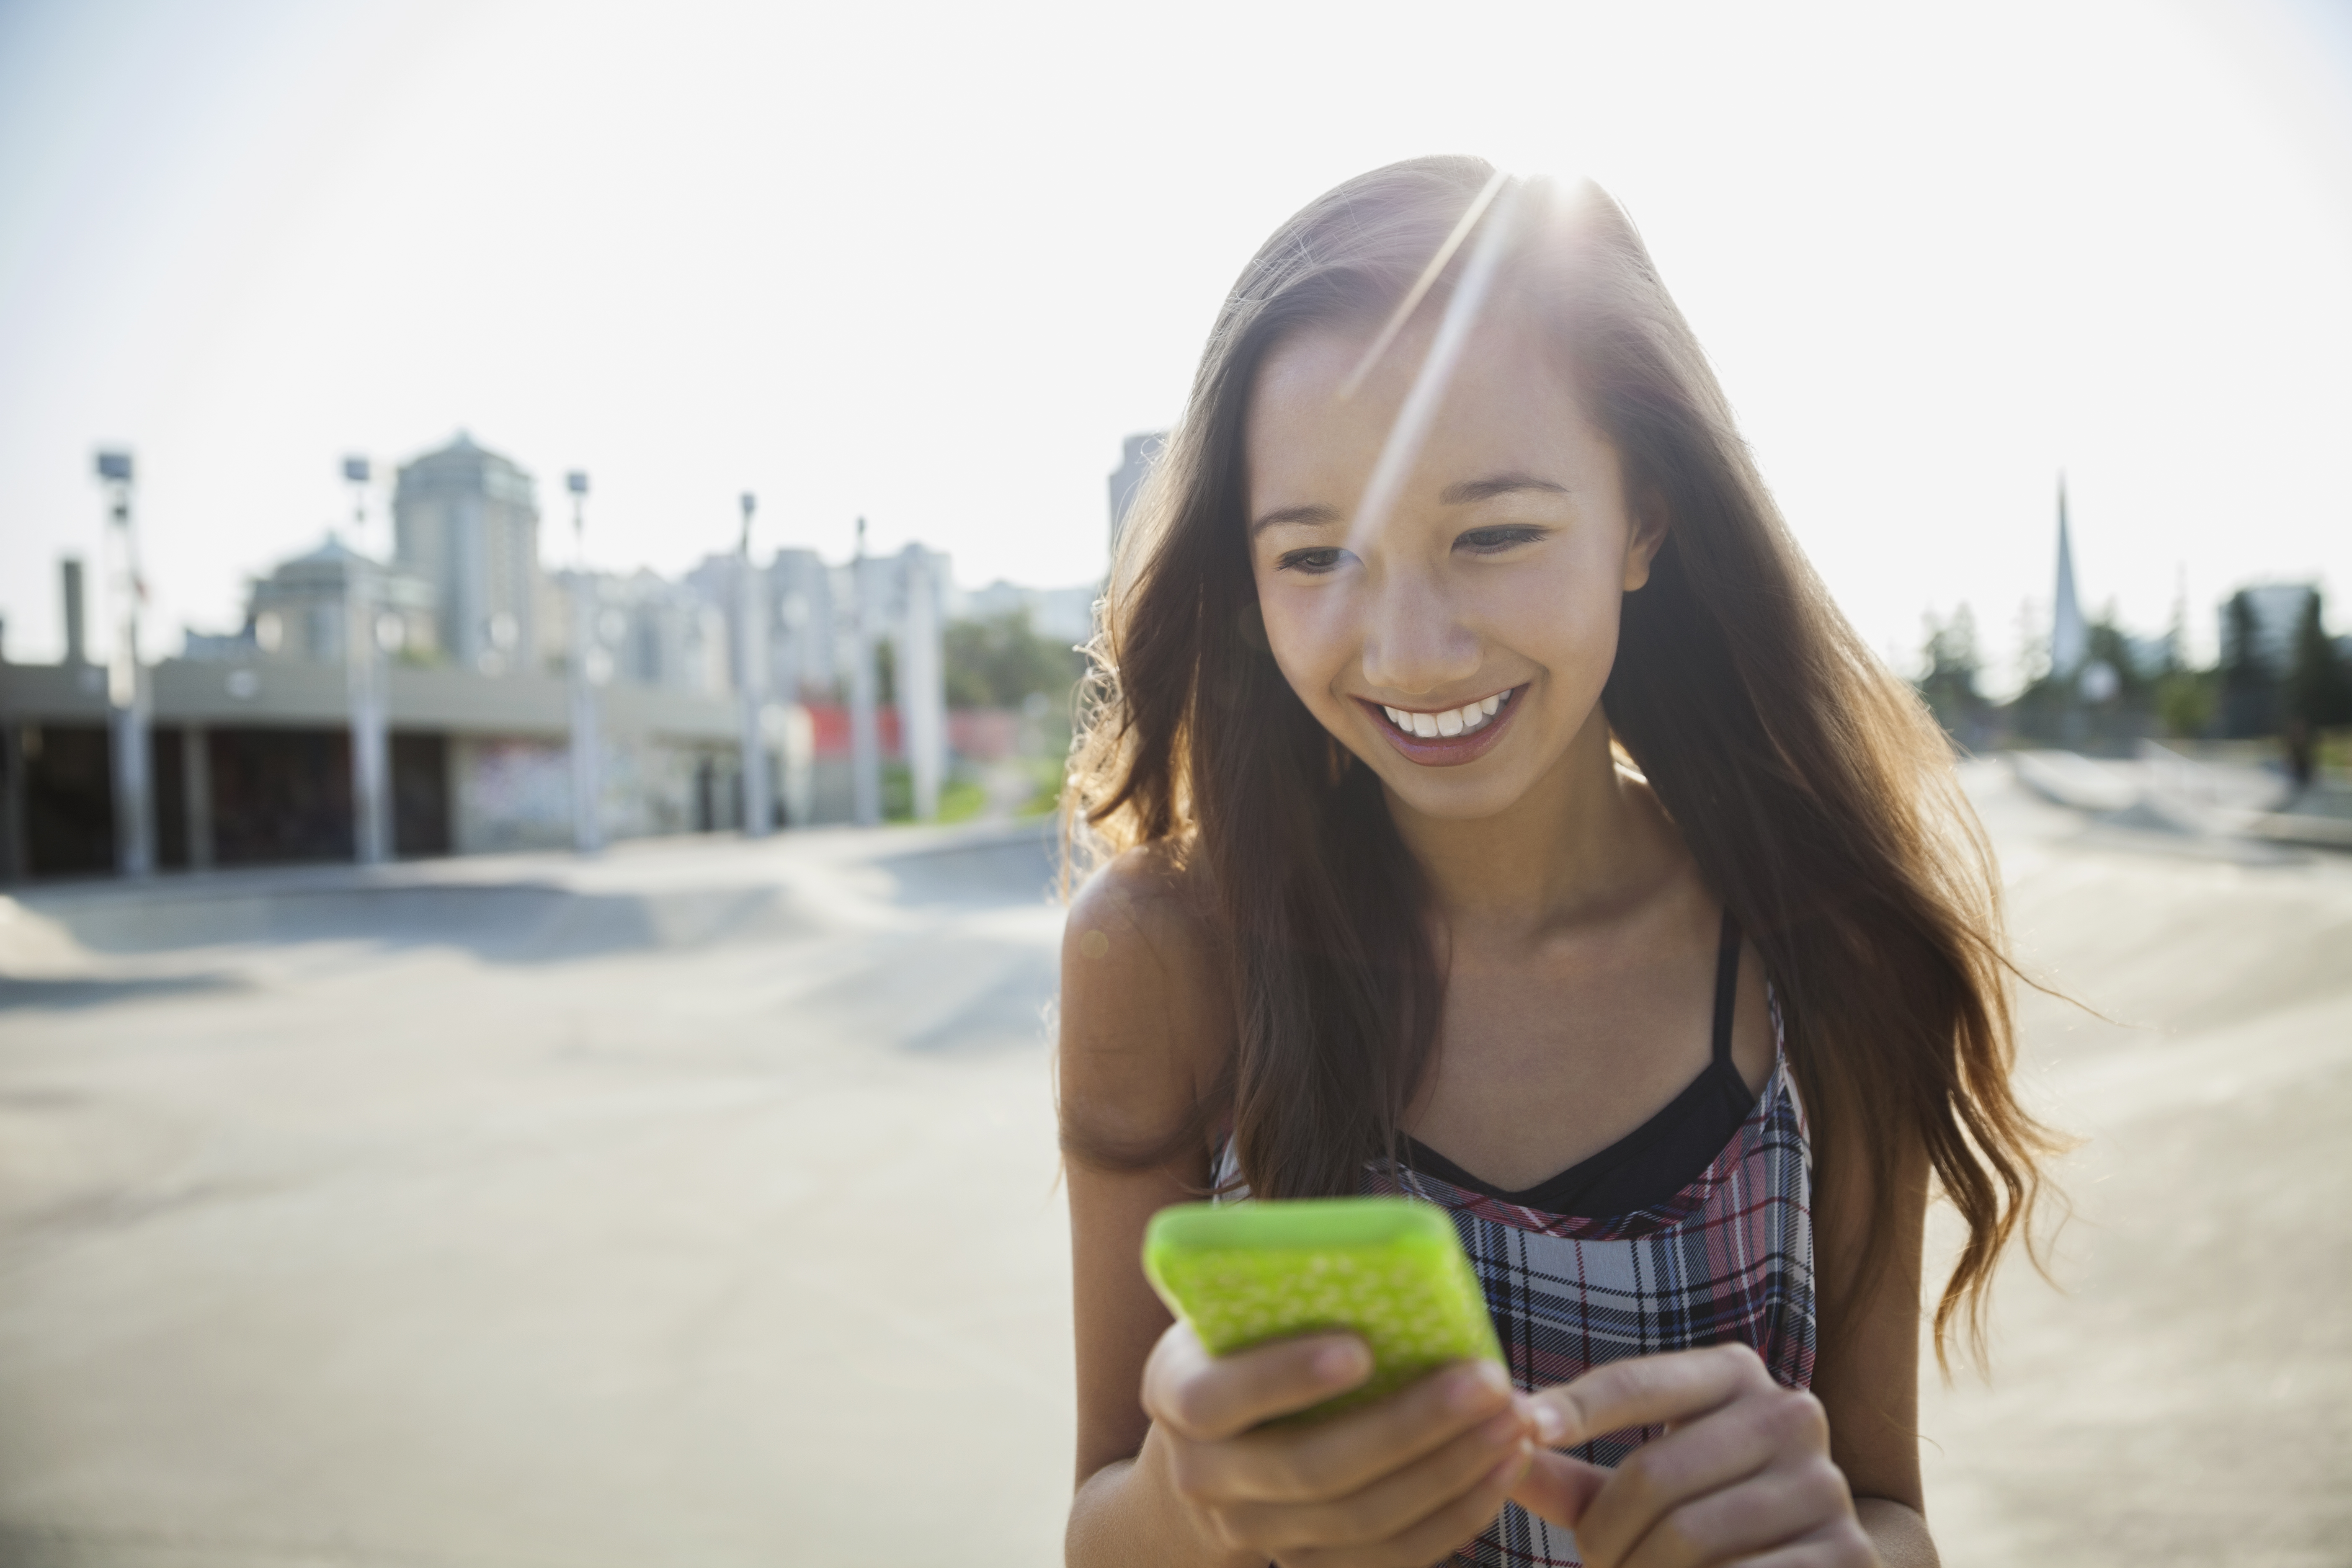 Smiling teenage girl with cell phone